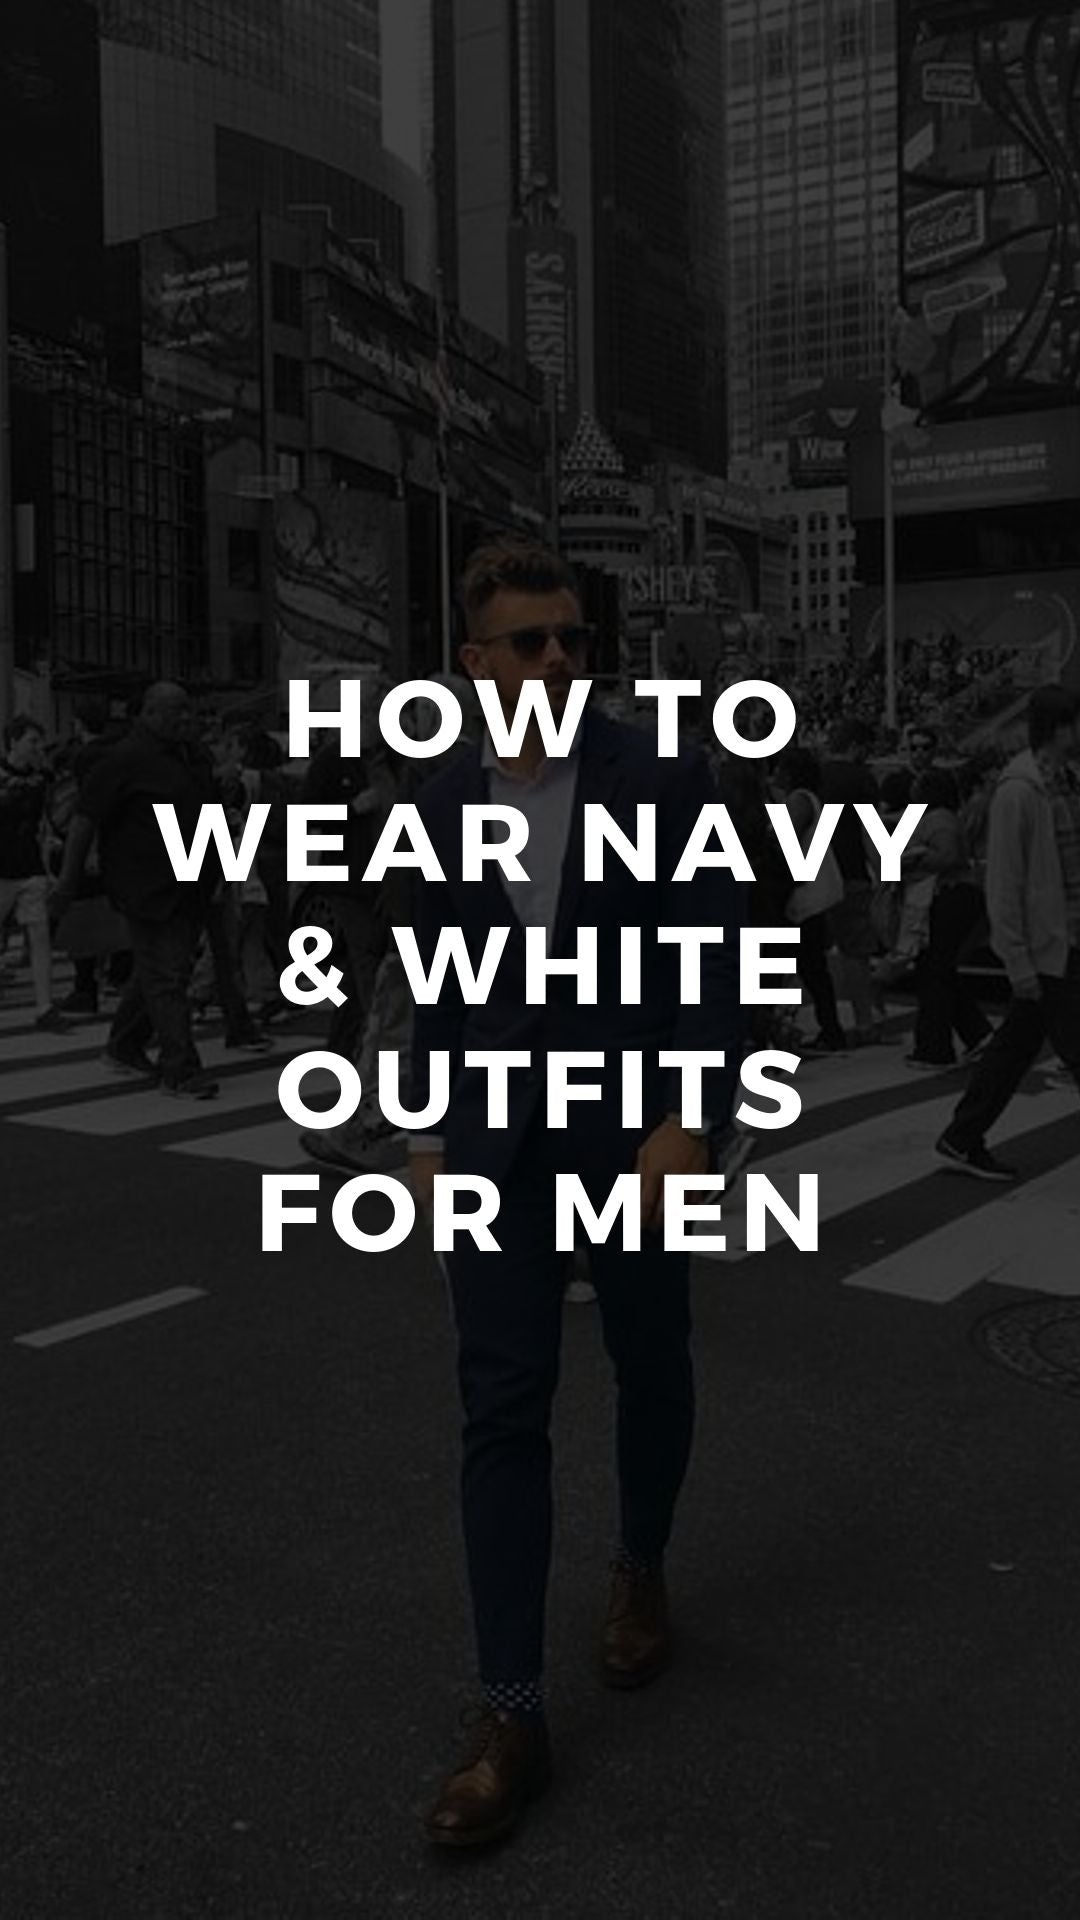 Navy & White Outfits For Men